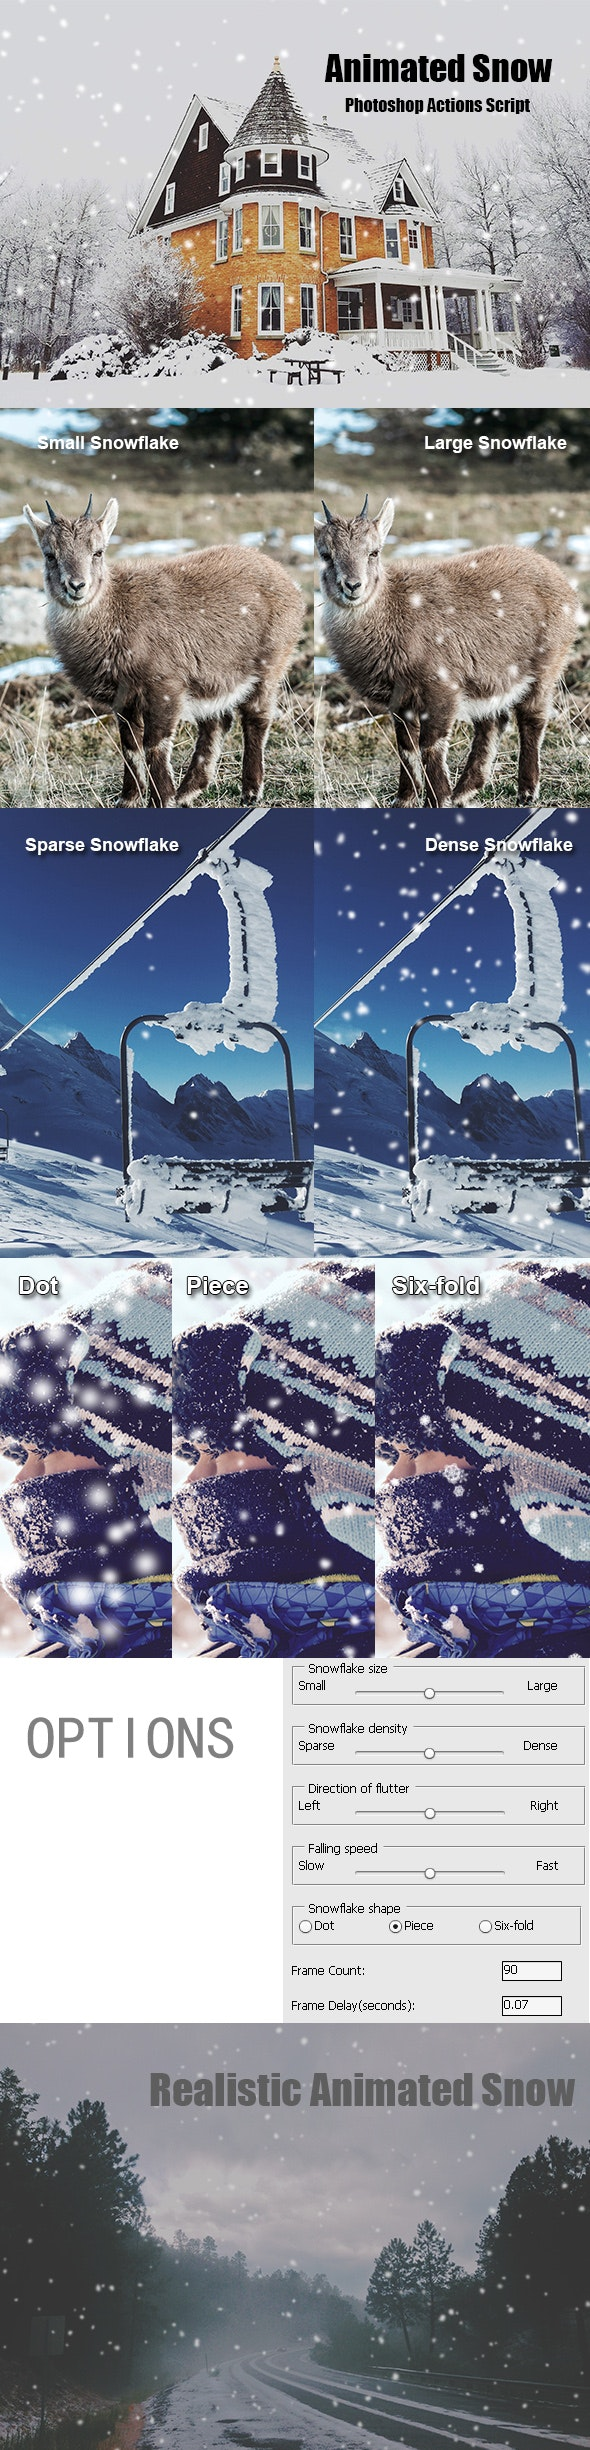 Animated Snow Photoshop Add-on - Photo Effects Actions